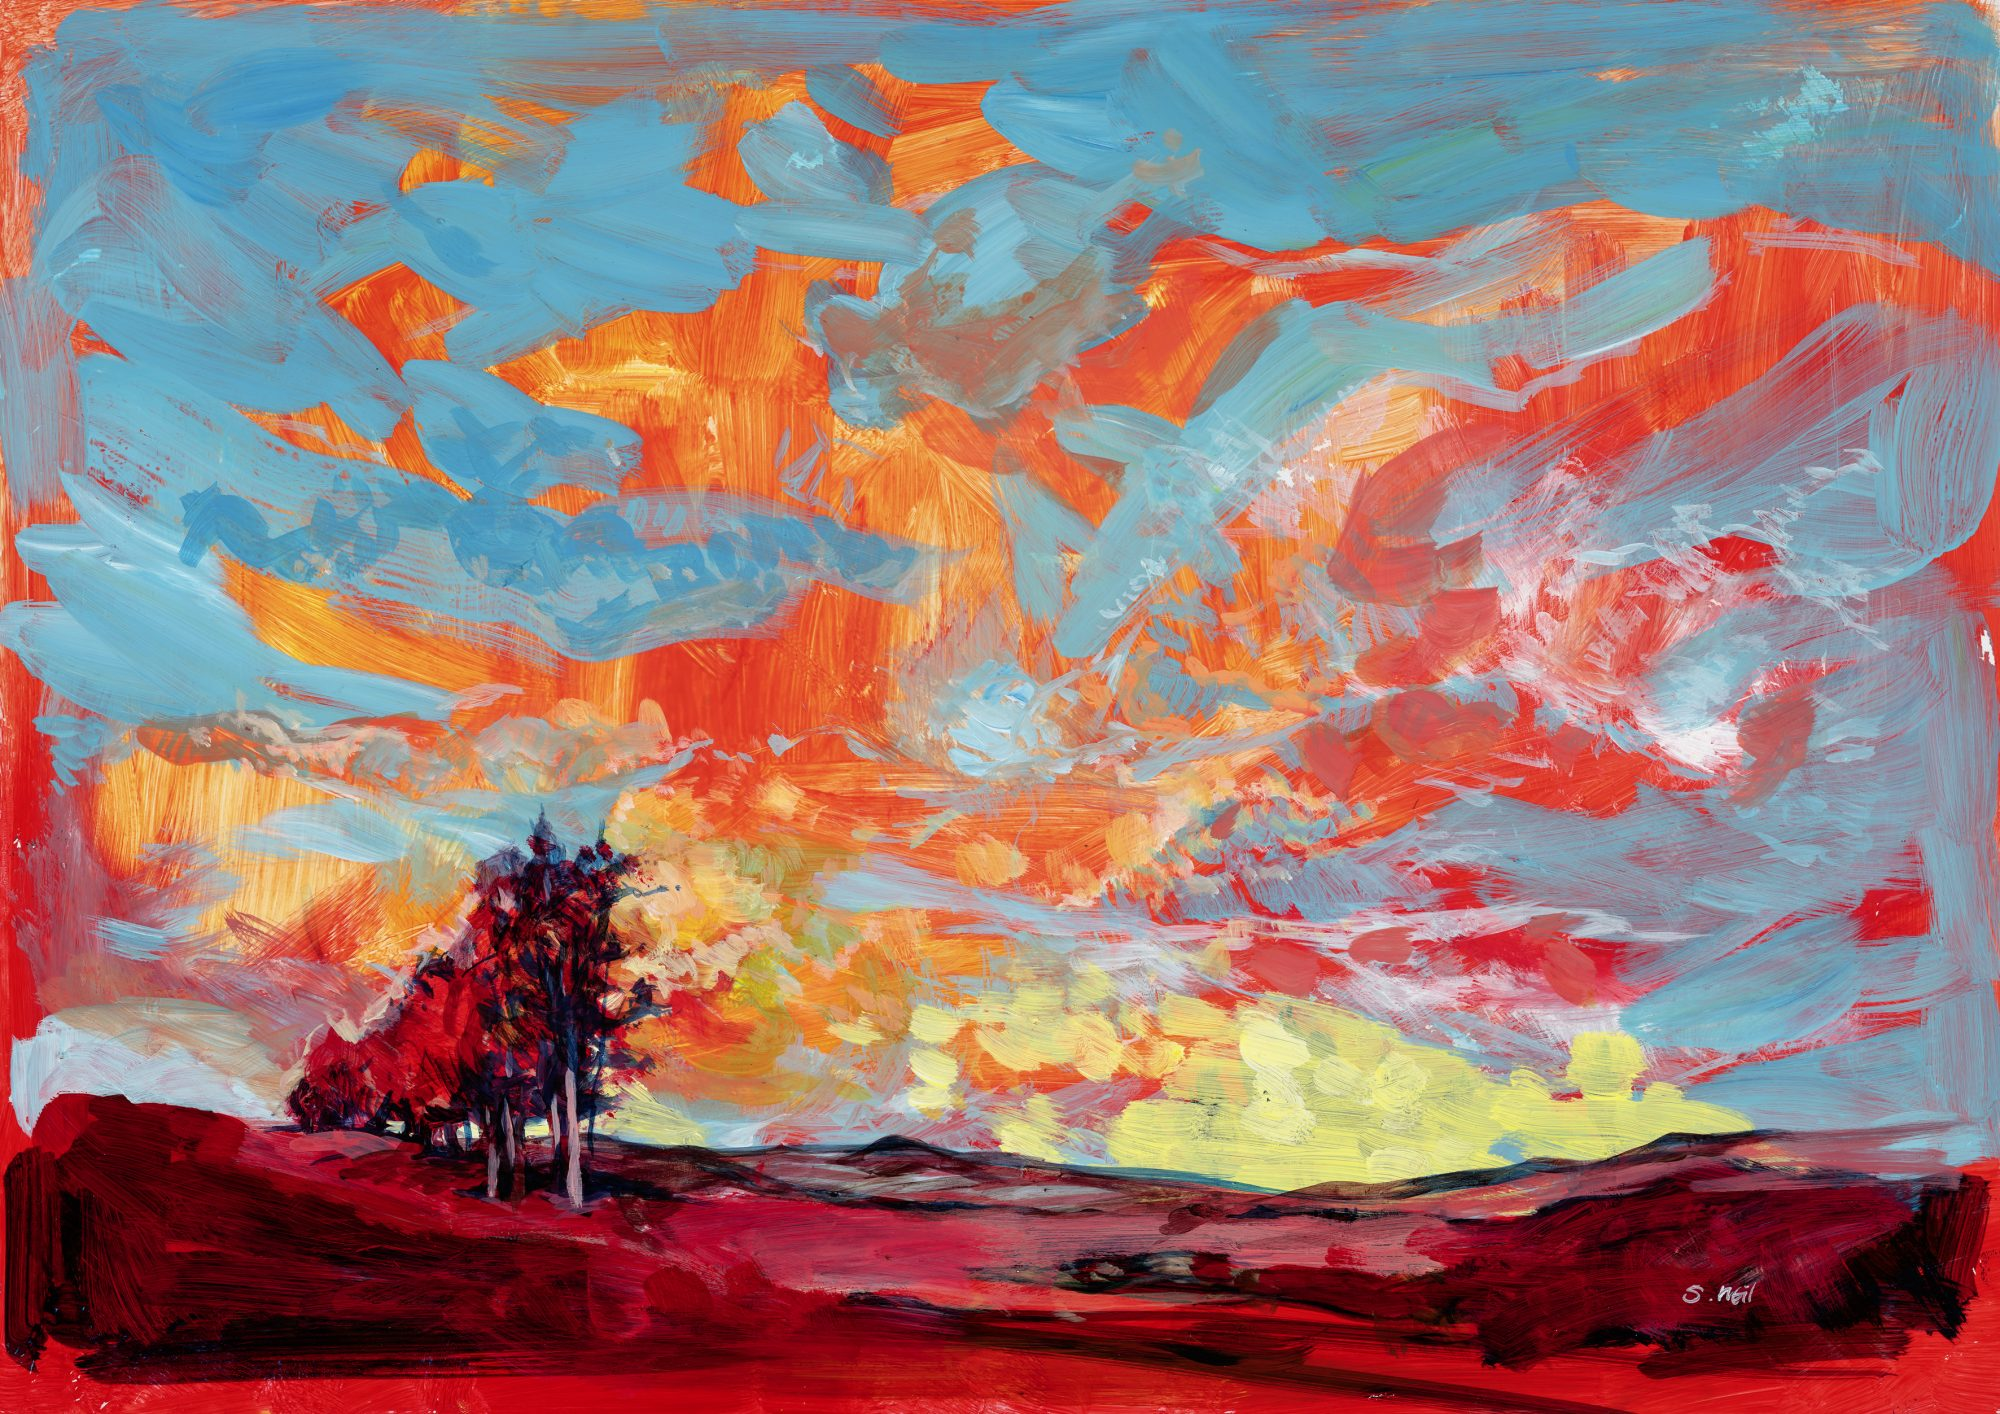 Scott_Neil_001_Red-Earth-And-Blue-Sky_30cm Promo